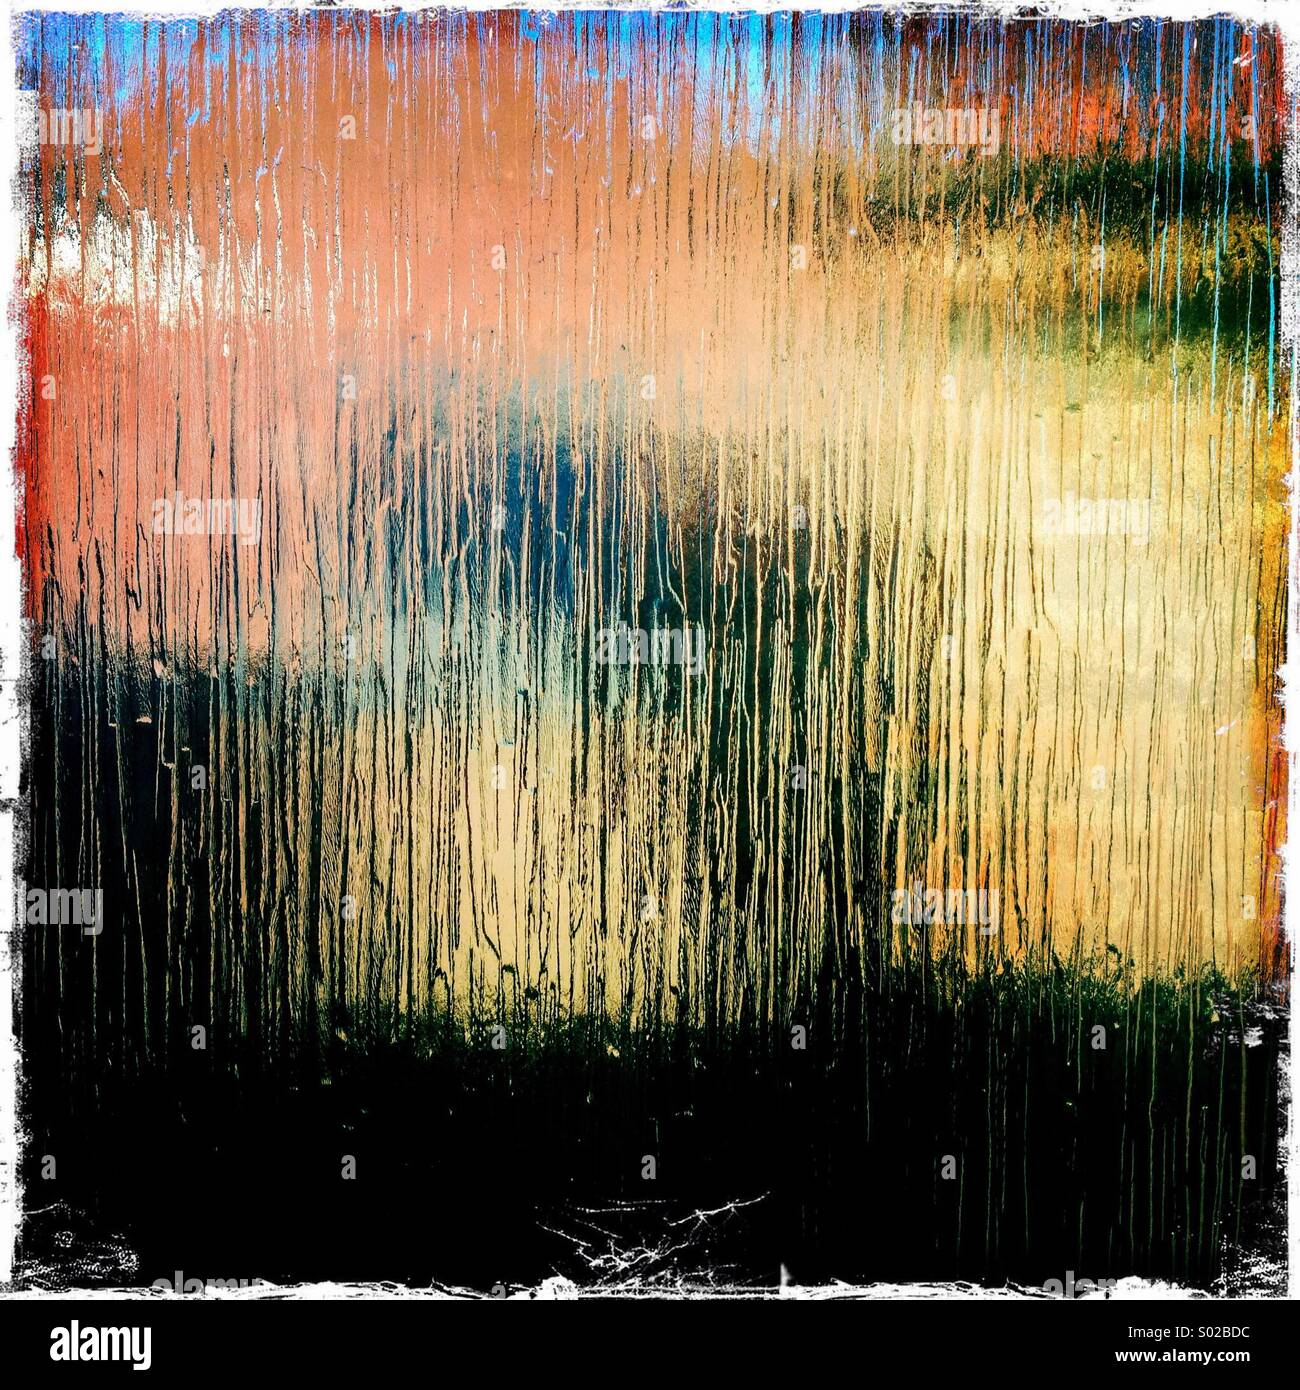 Abstract photo. Looking through an obscure glass window. - Stock Image